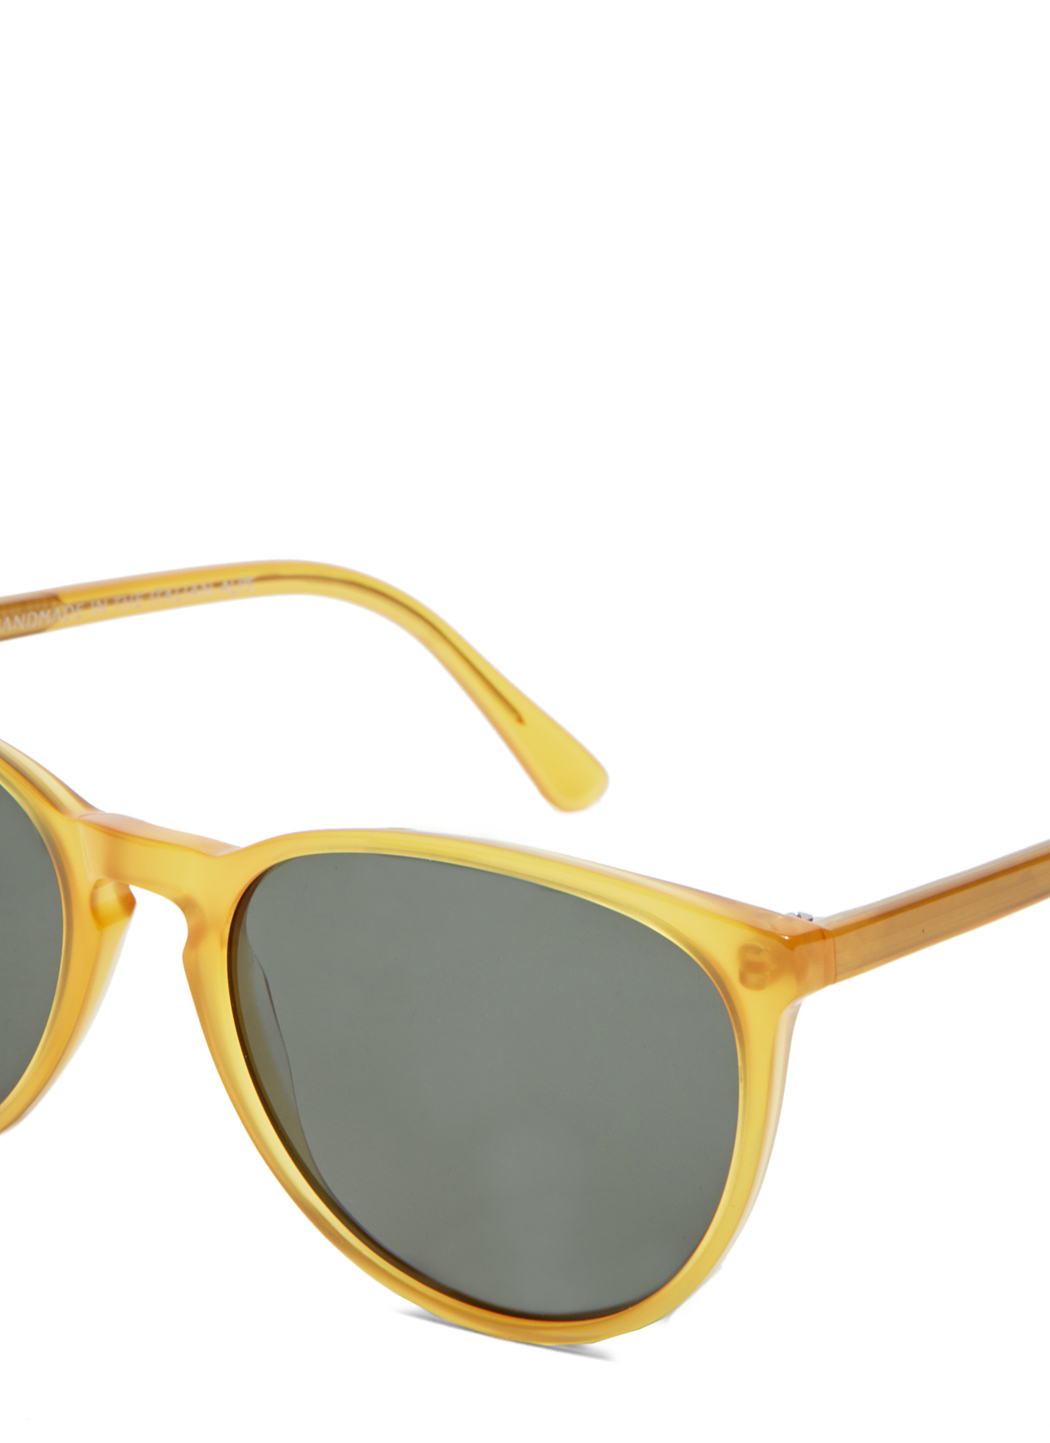 Dom Vetro Lupetto Sunglasses In Yellow For Men Lyst